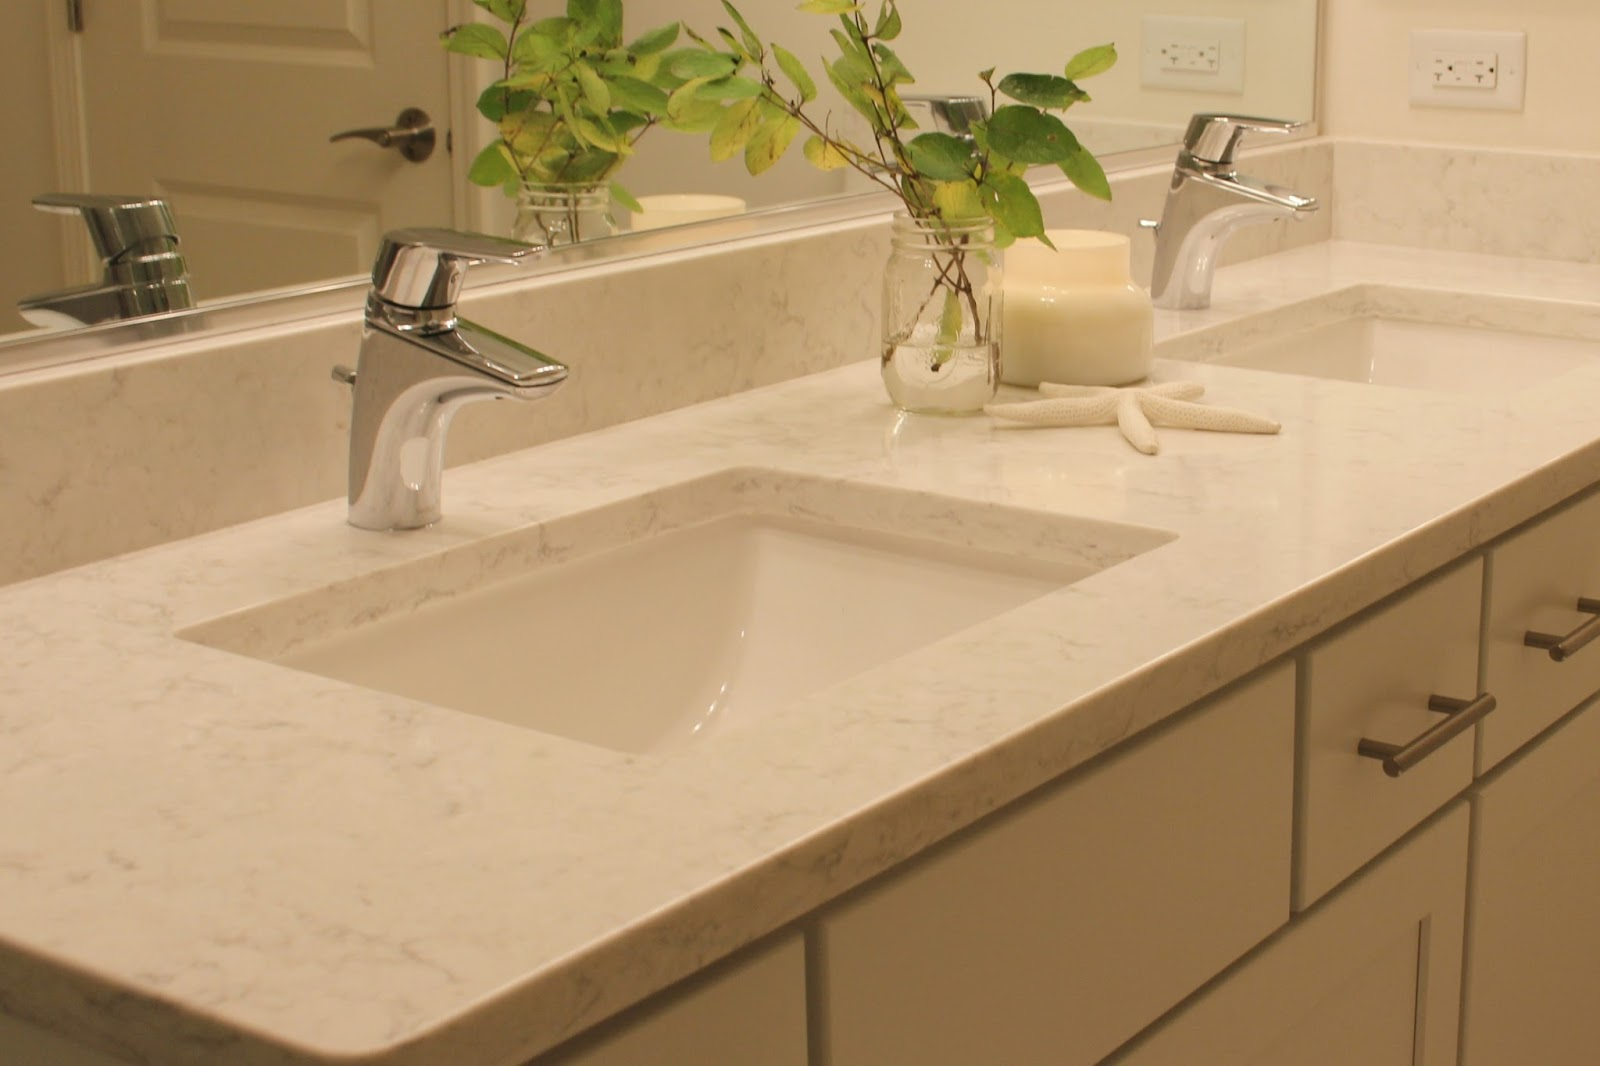 Quartz Bathroom Countertops : Choosing the perfect quartz color for countertops hello